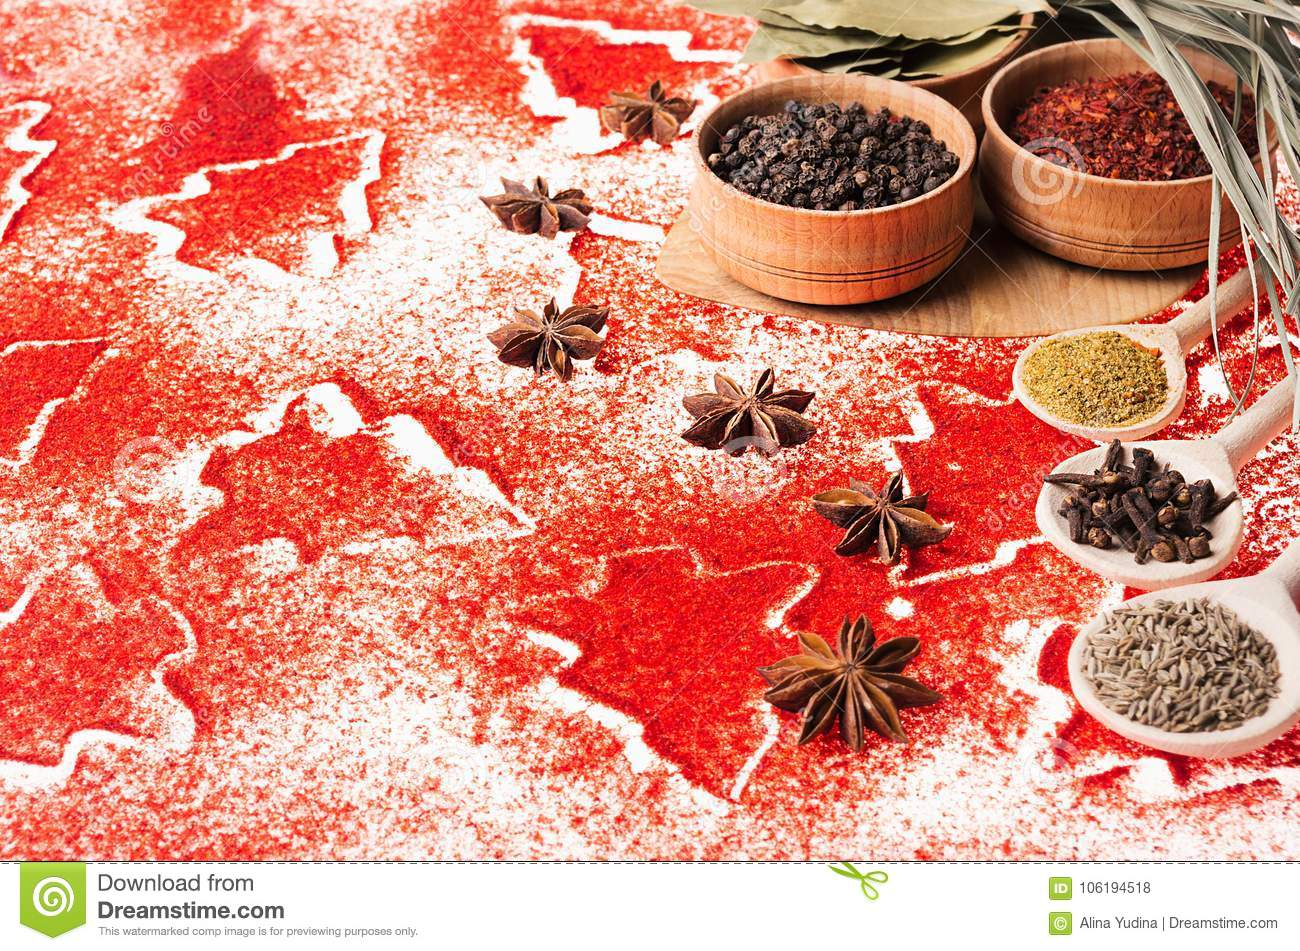 Christmas food background - different dry spices in wooden bowls on red christmas trees pattern, closeup, copy space.